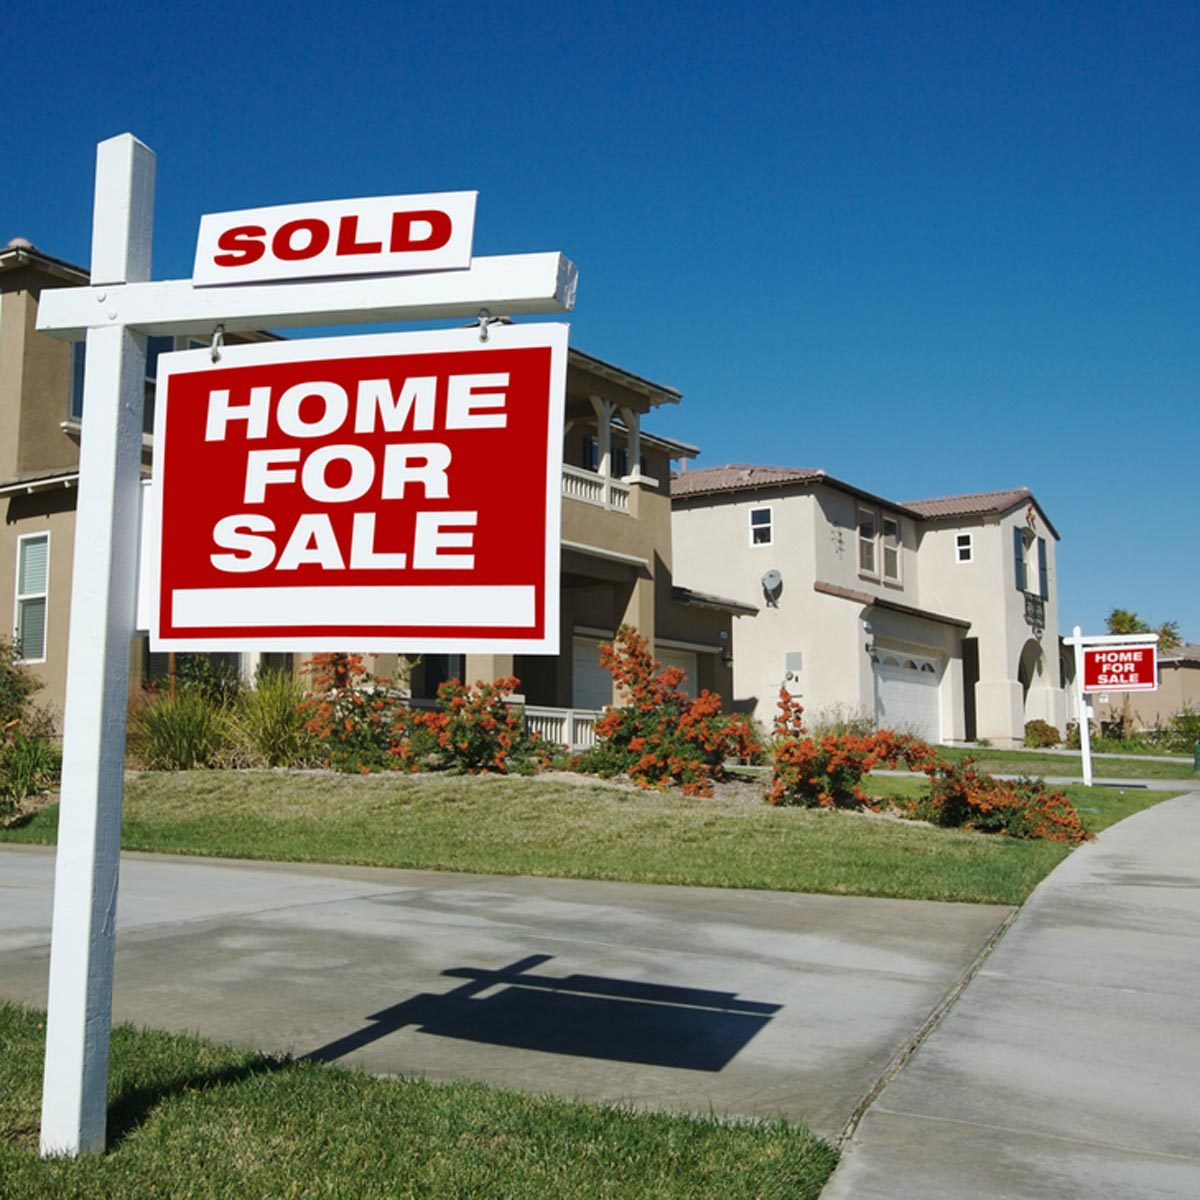 shutterstock_6345625-1200x1200 home for sale sale sign sold real-estate